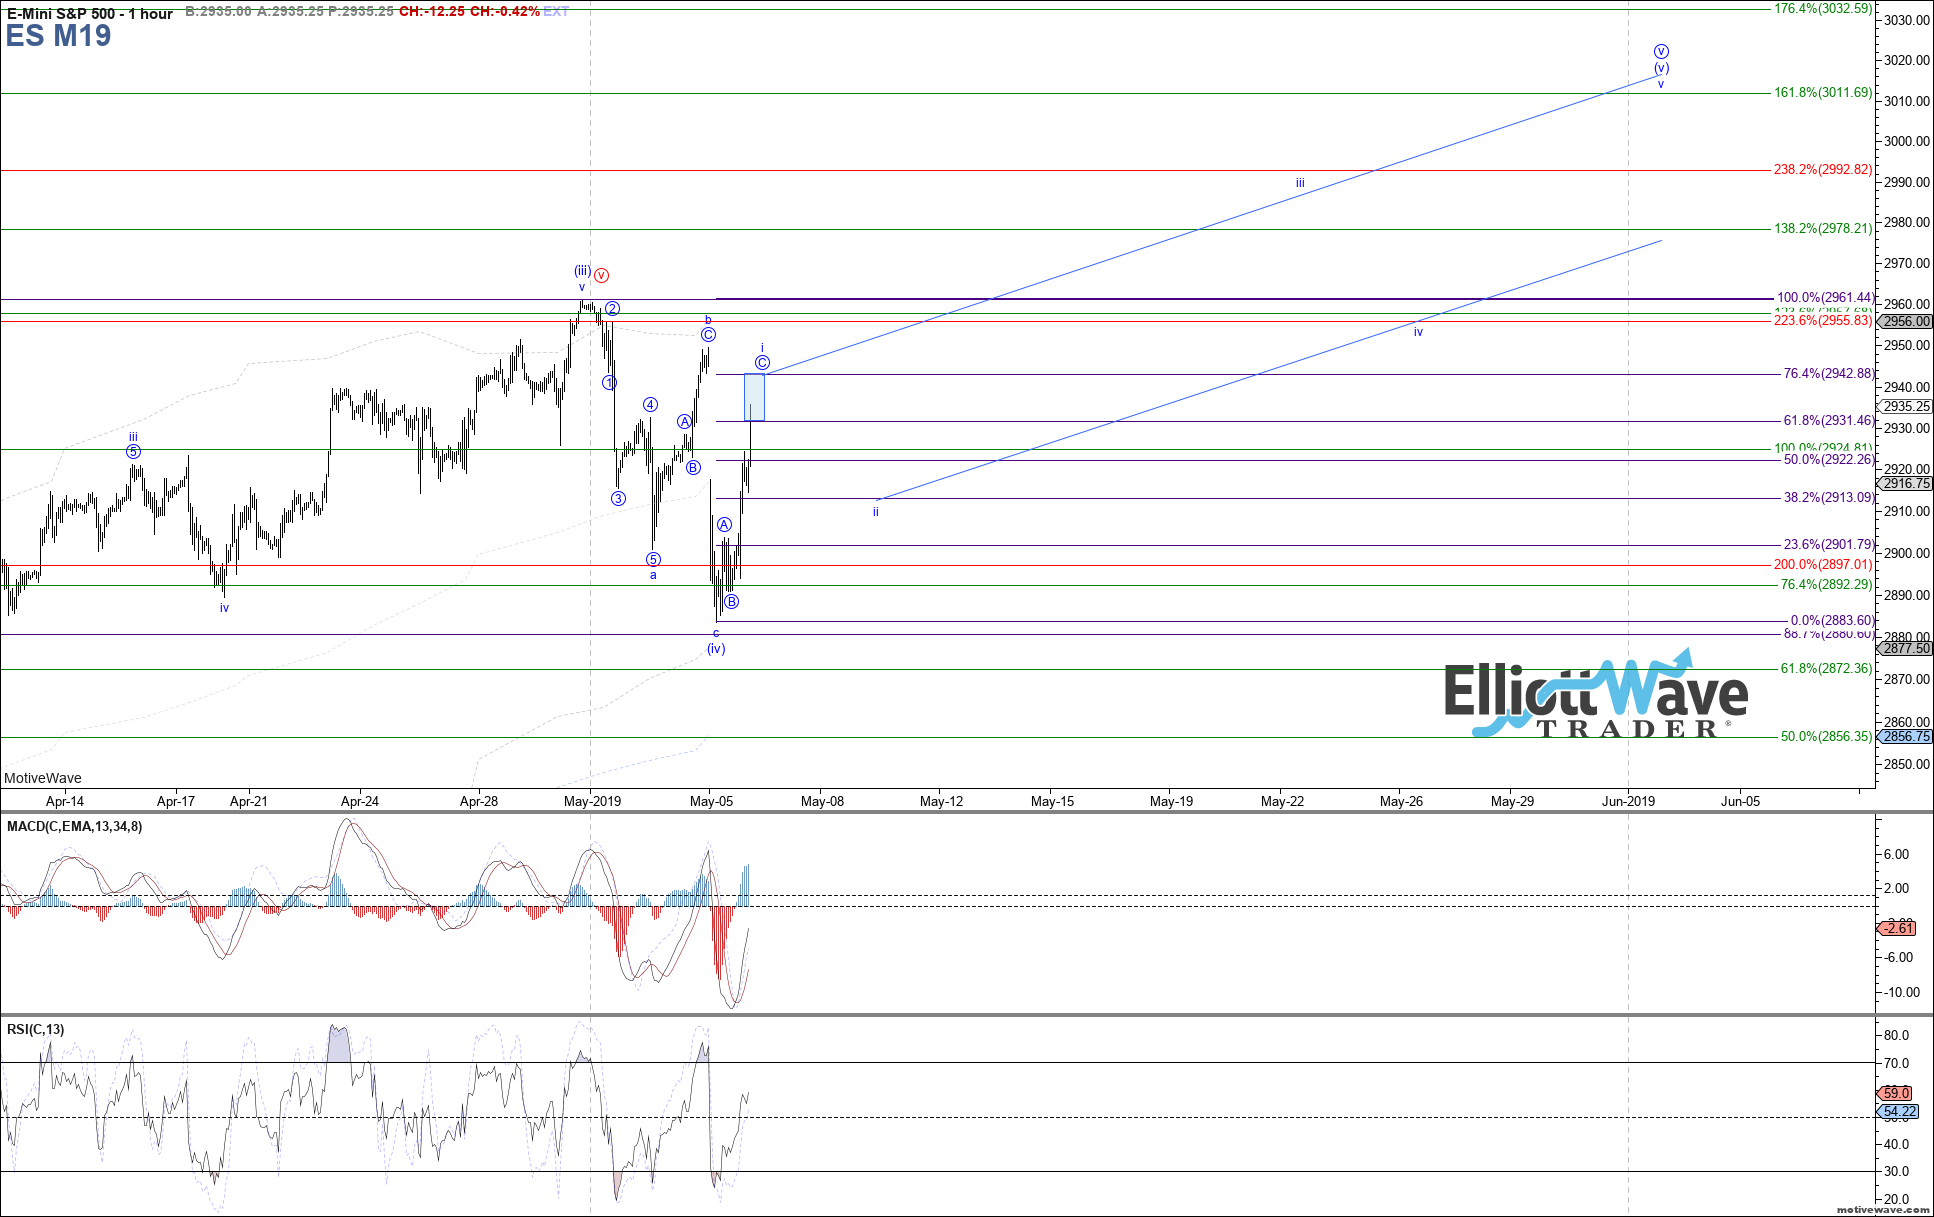 ES M19 - Intraday - May-06 1157 AM (1 hour)